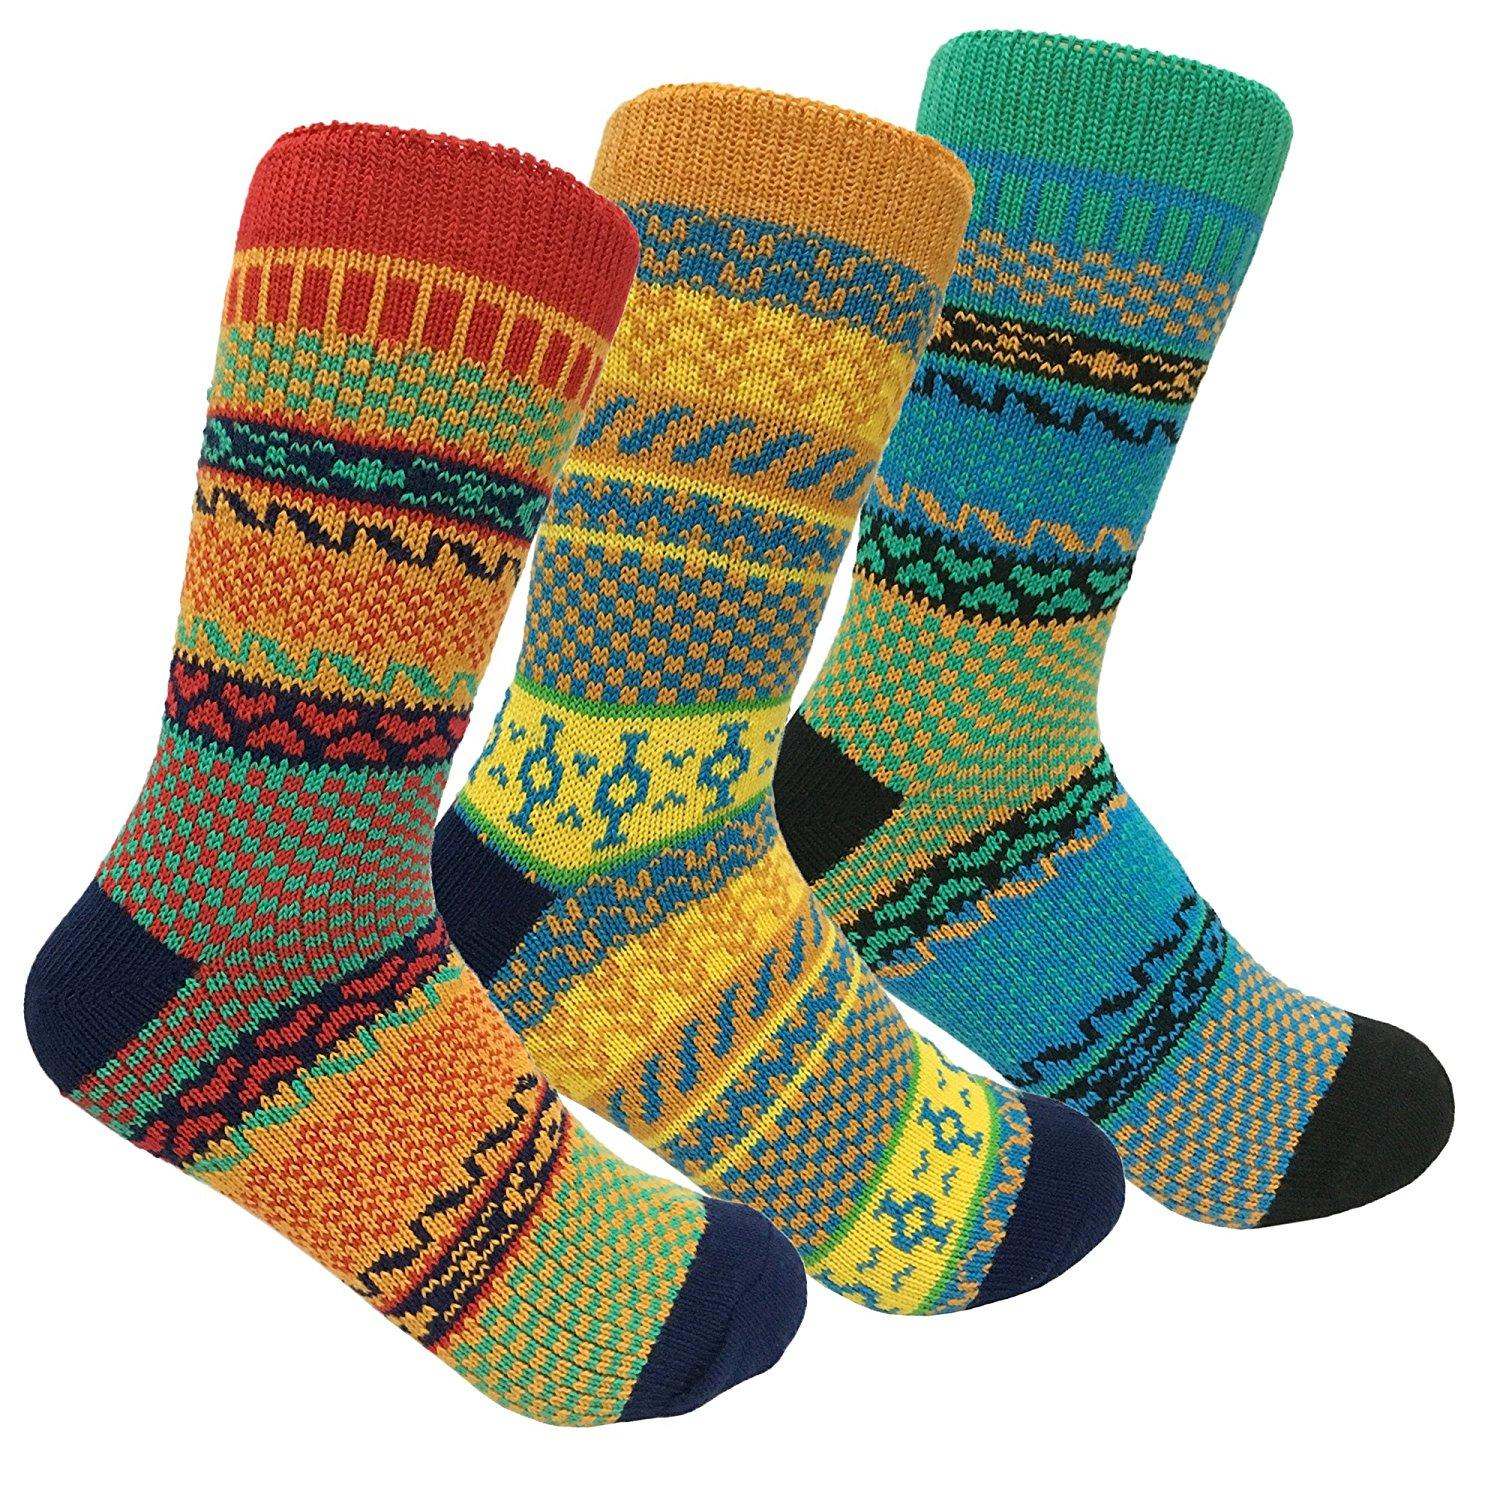 Women/'s Thick Comfy Vintage Knitted Colorful Patterned Cabin Crew Slipper Socks